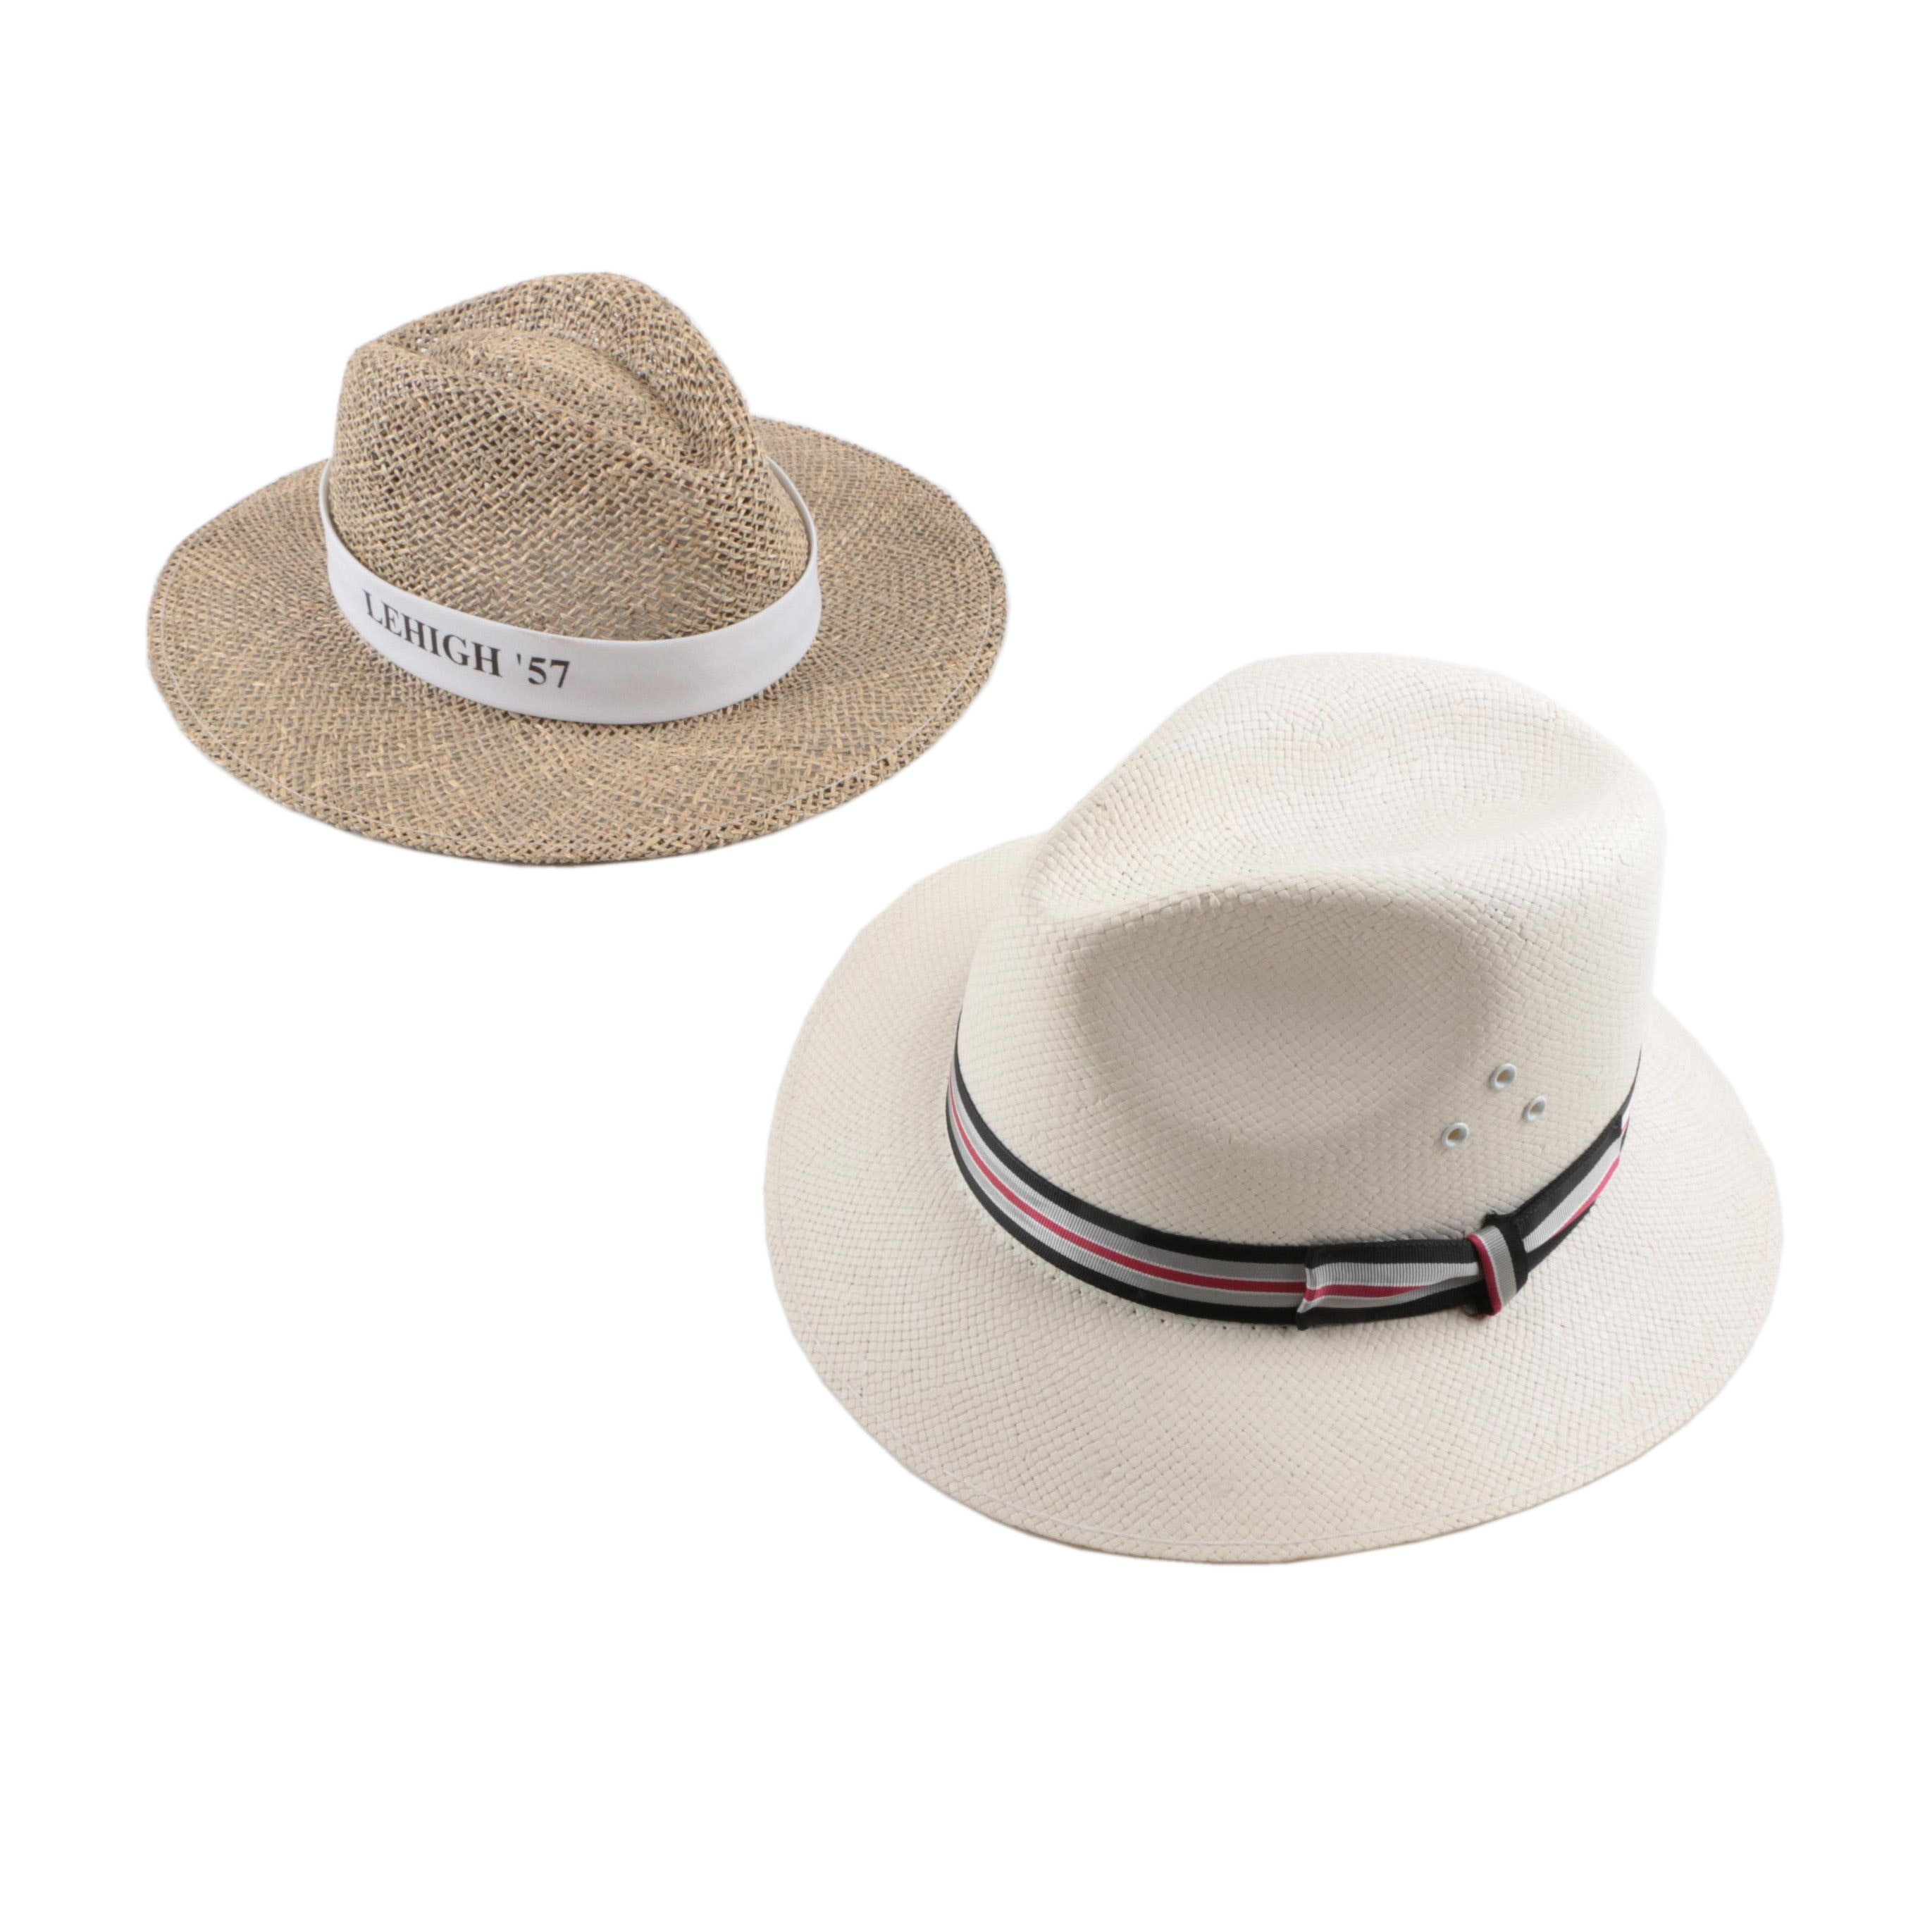 Men's Woven Straw and Paper Fedoras